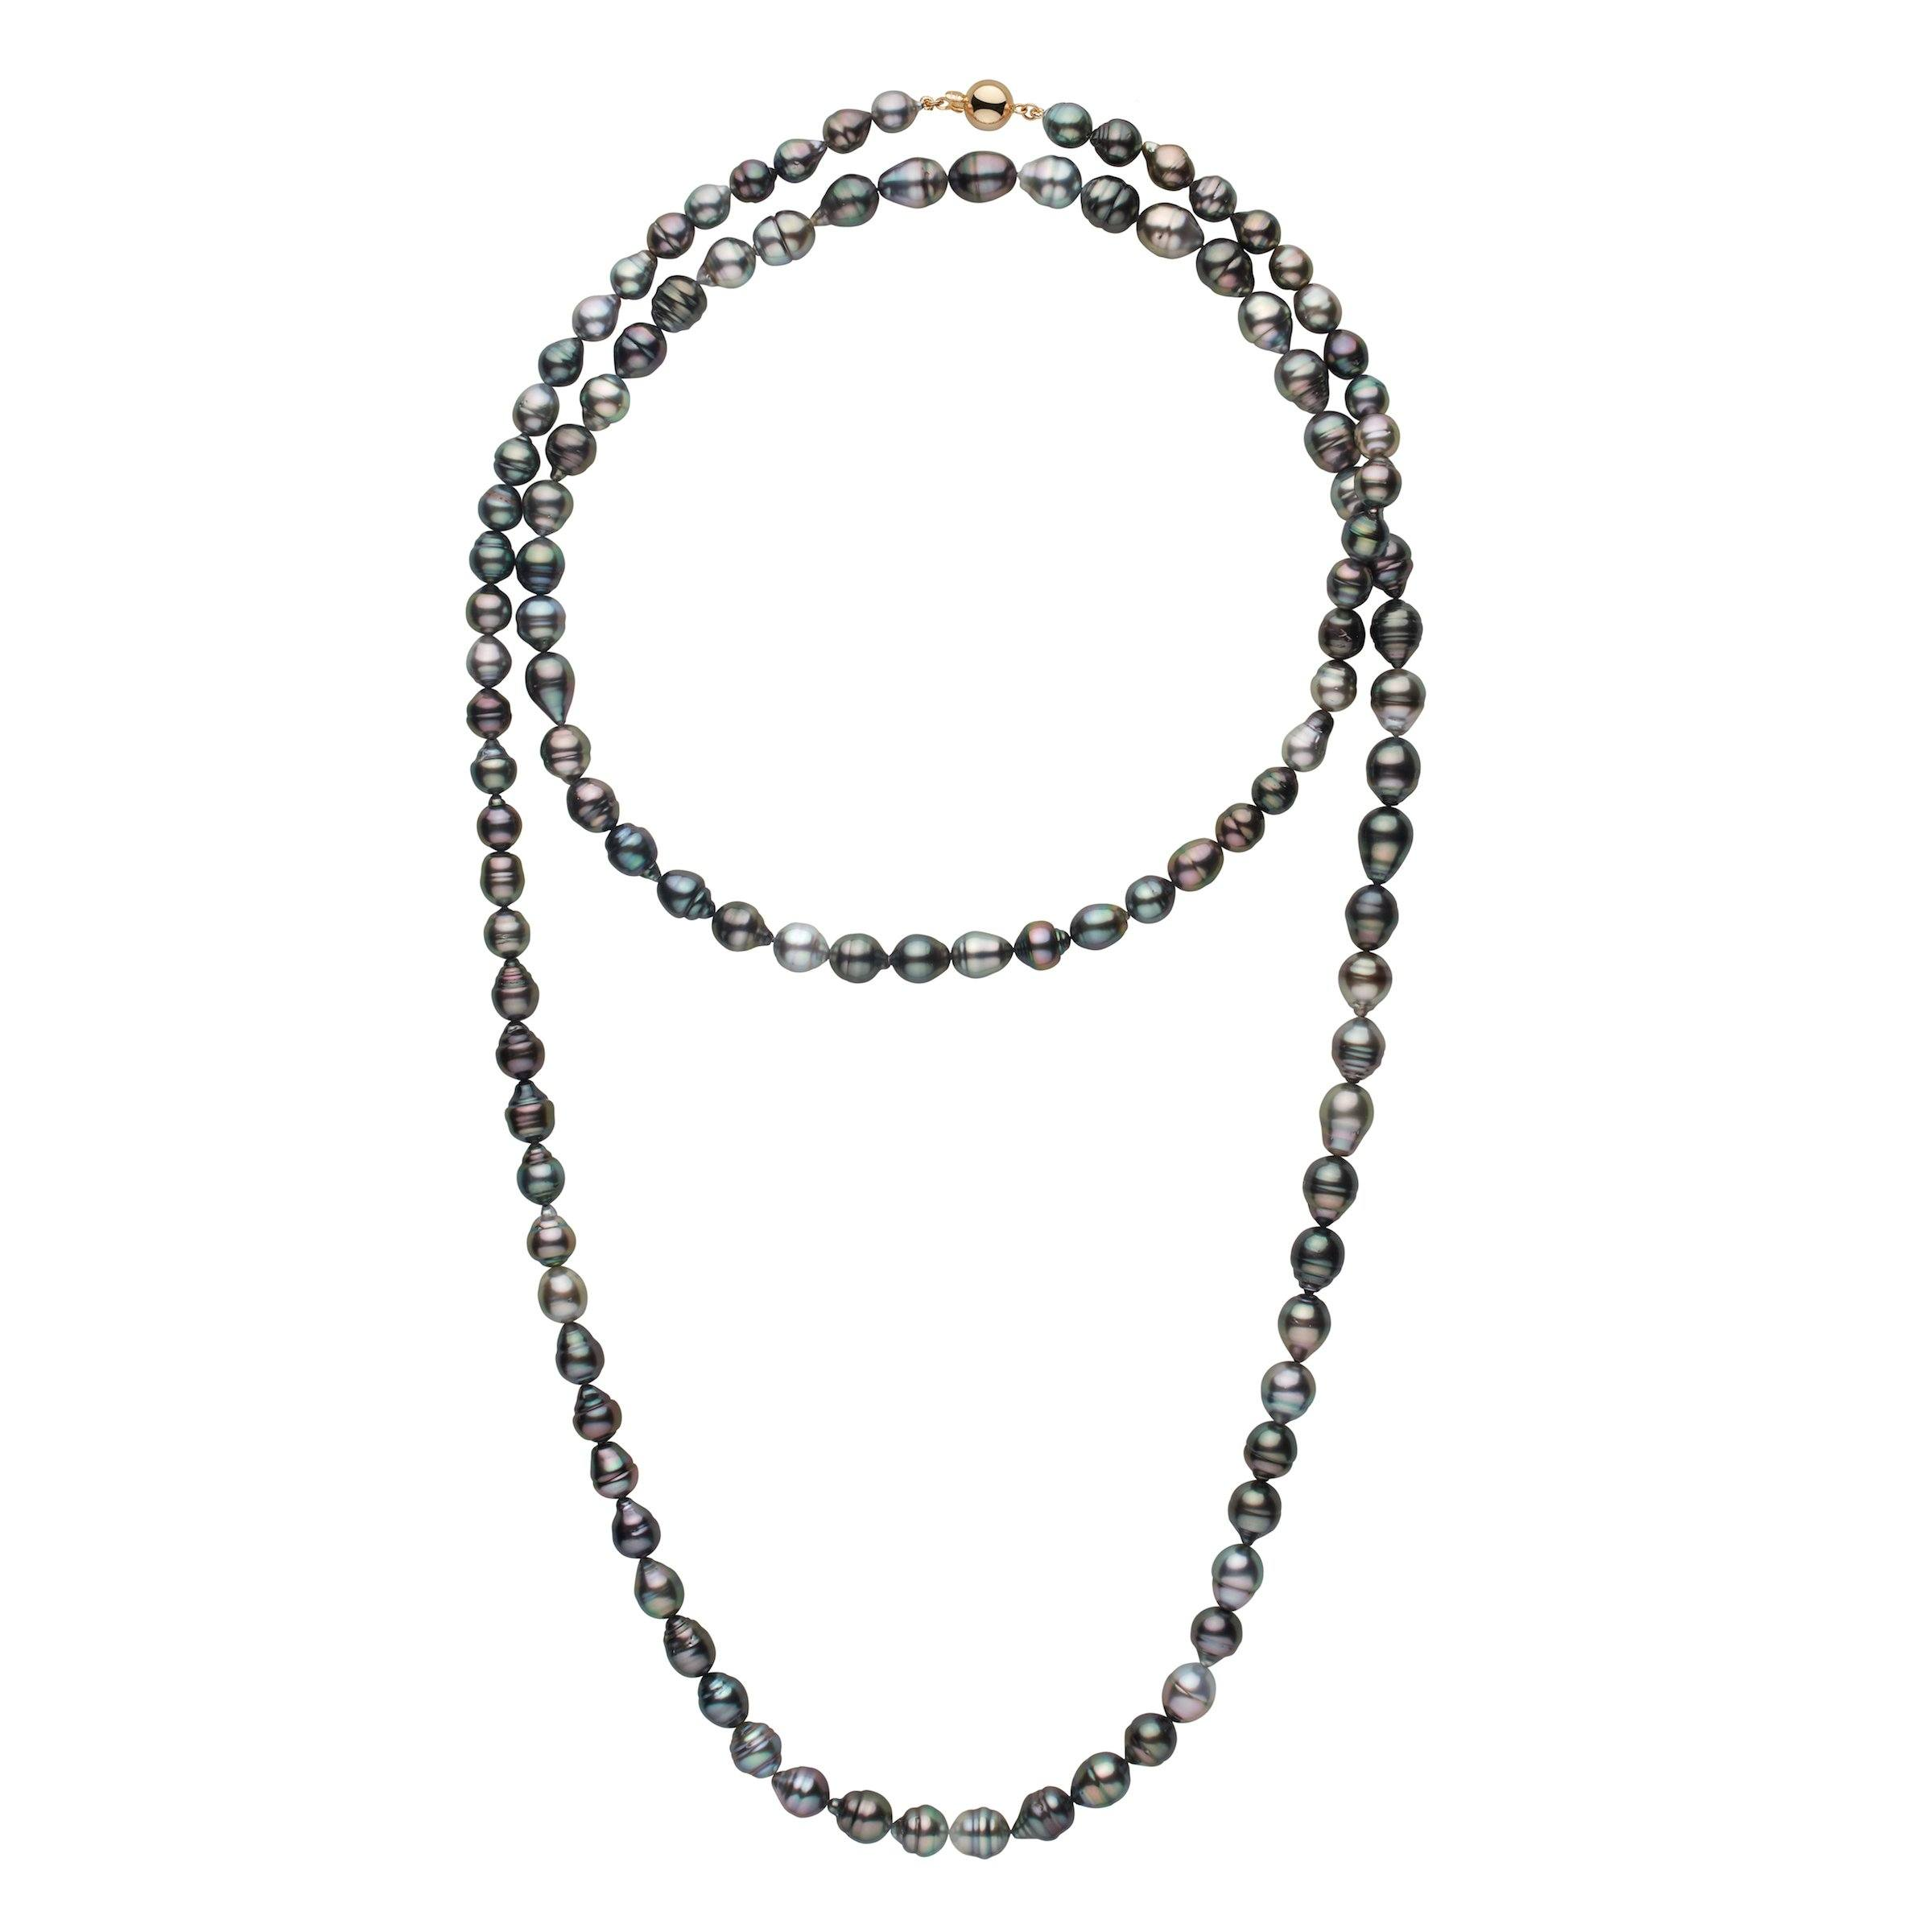 8.0-10.4 mm AA+/AAA Tahitian Baroque Pearl Necklace - 54 Inches